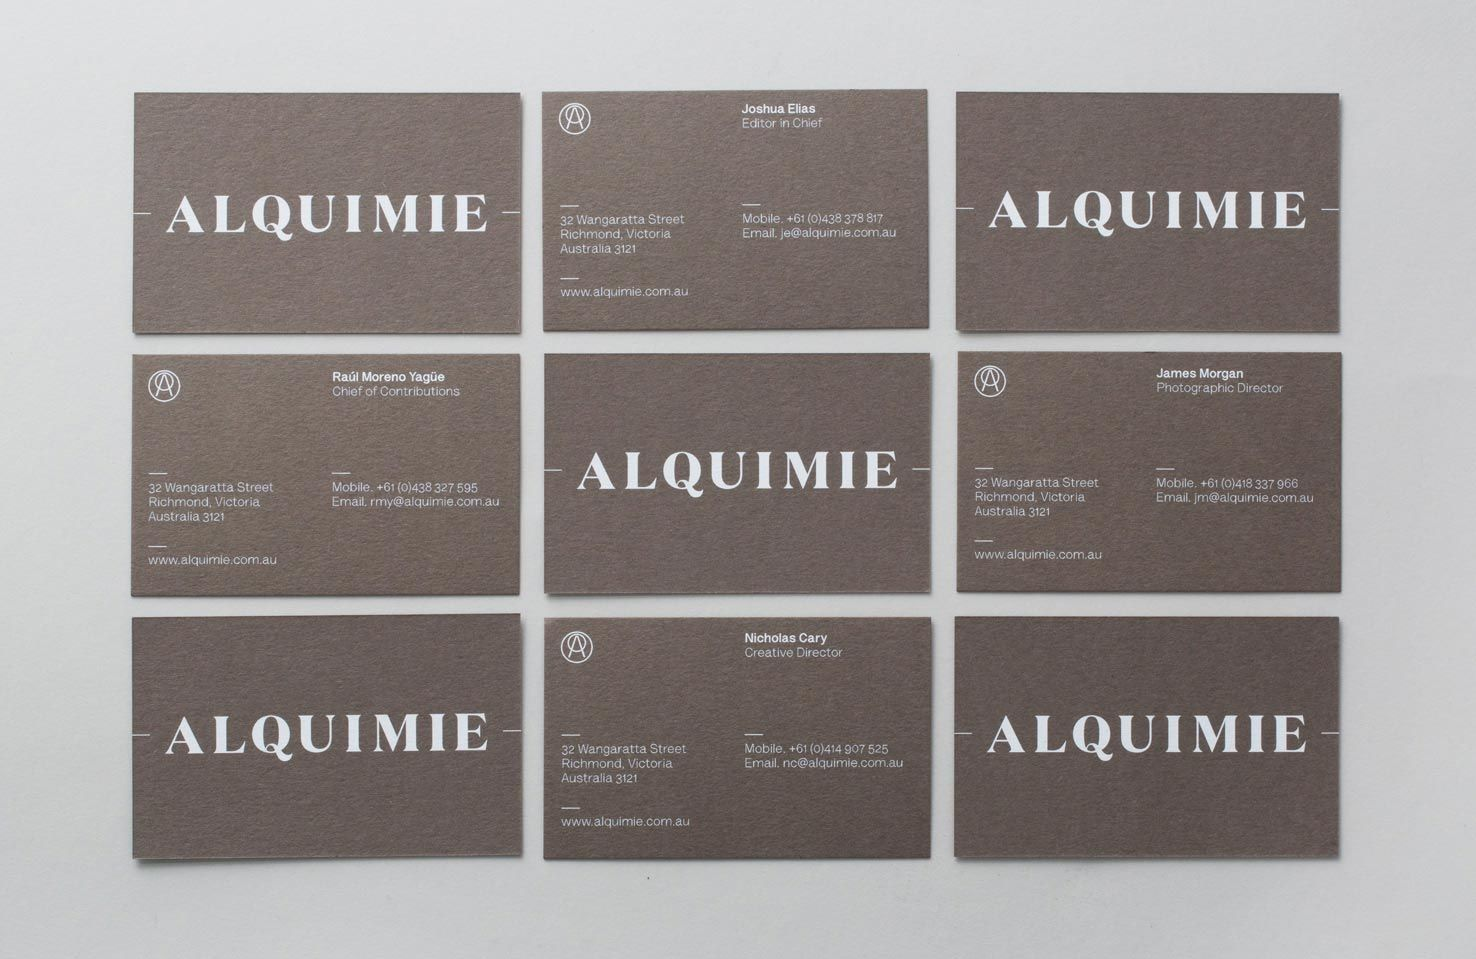 Pin by diana sanchez on design pinterest brand identity and logos logotype and white ink warm grey business card designed by thoughtassembly for quarterly beverage magazine alquimie reheart Images